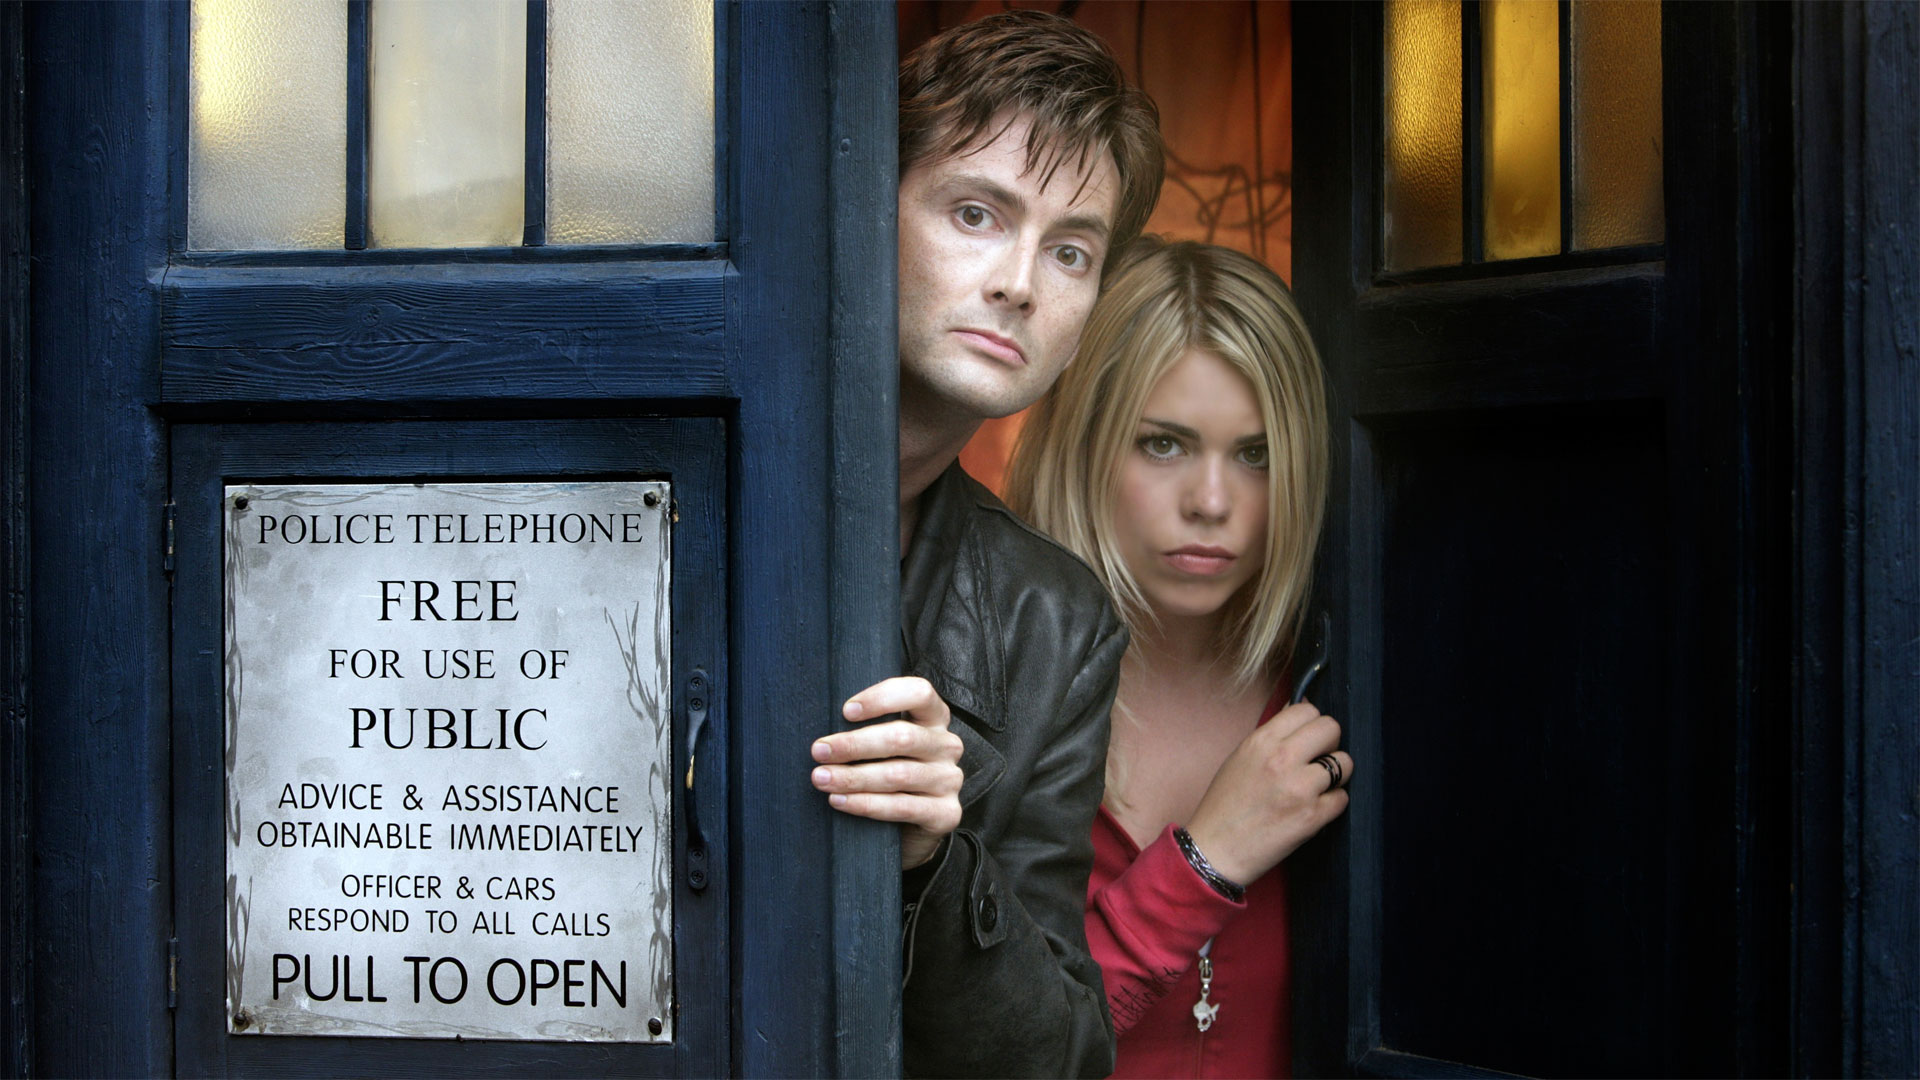 anglo_1920x1080_doctorrose